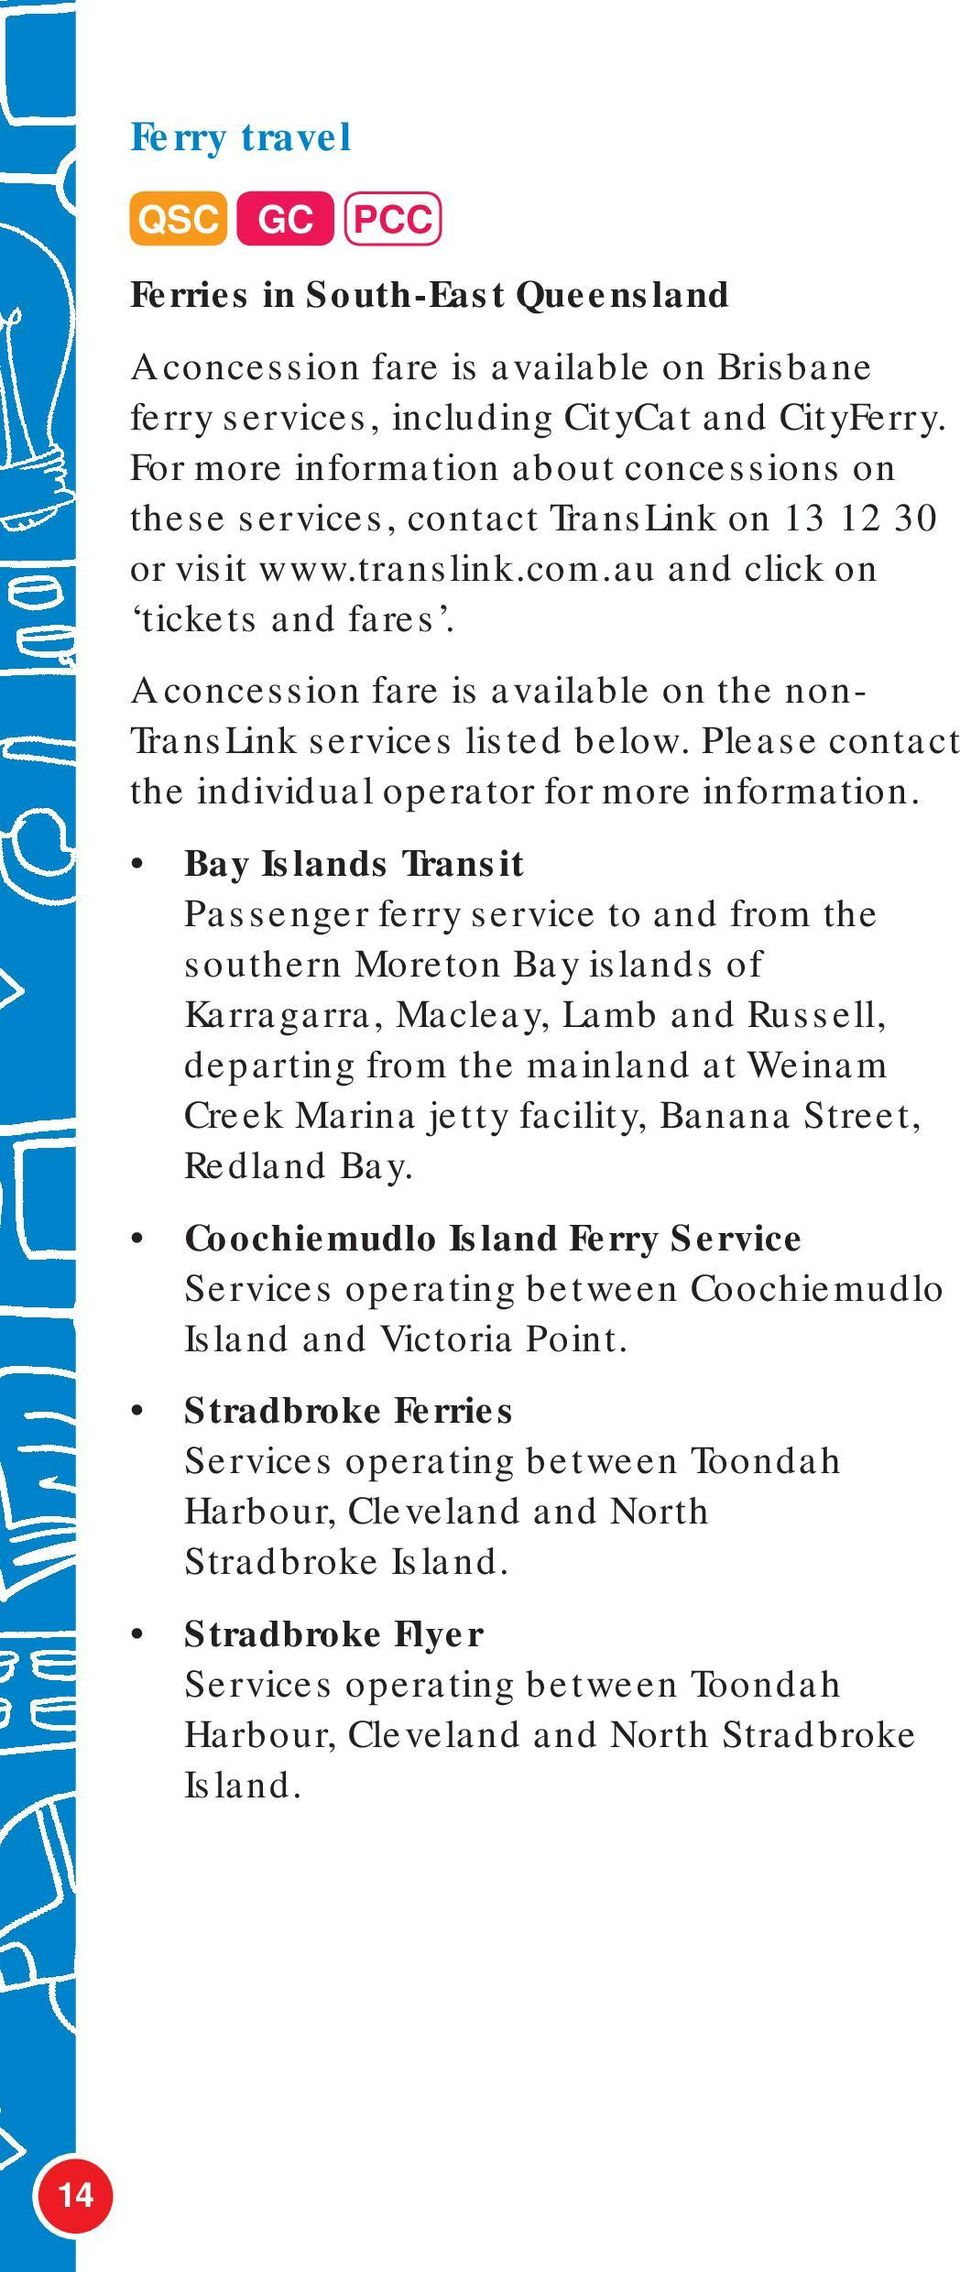 A concession fare is available on the non- TransLink services listed below. Please contact the individual operator for more information.